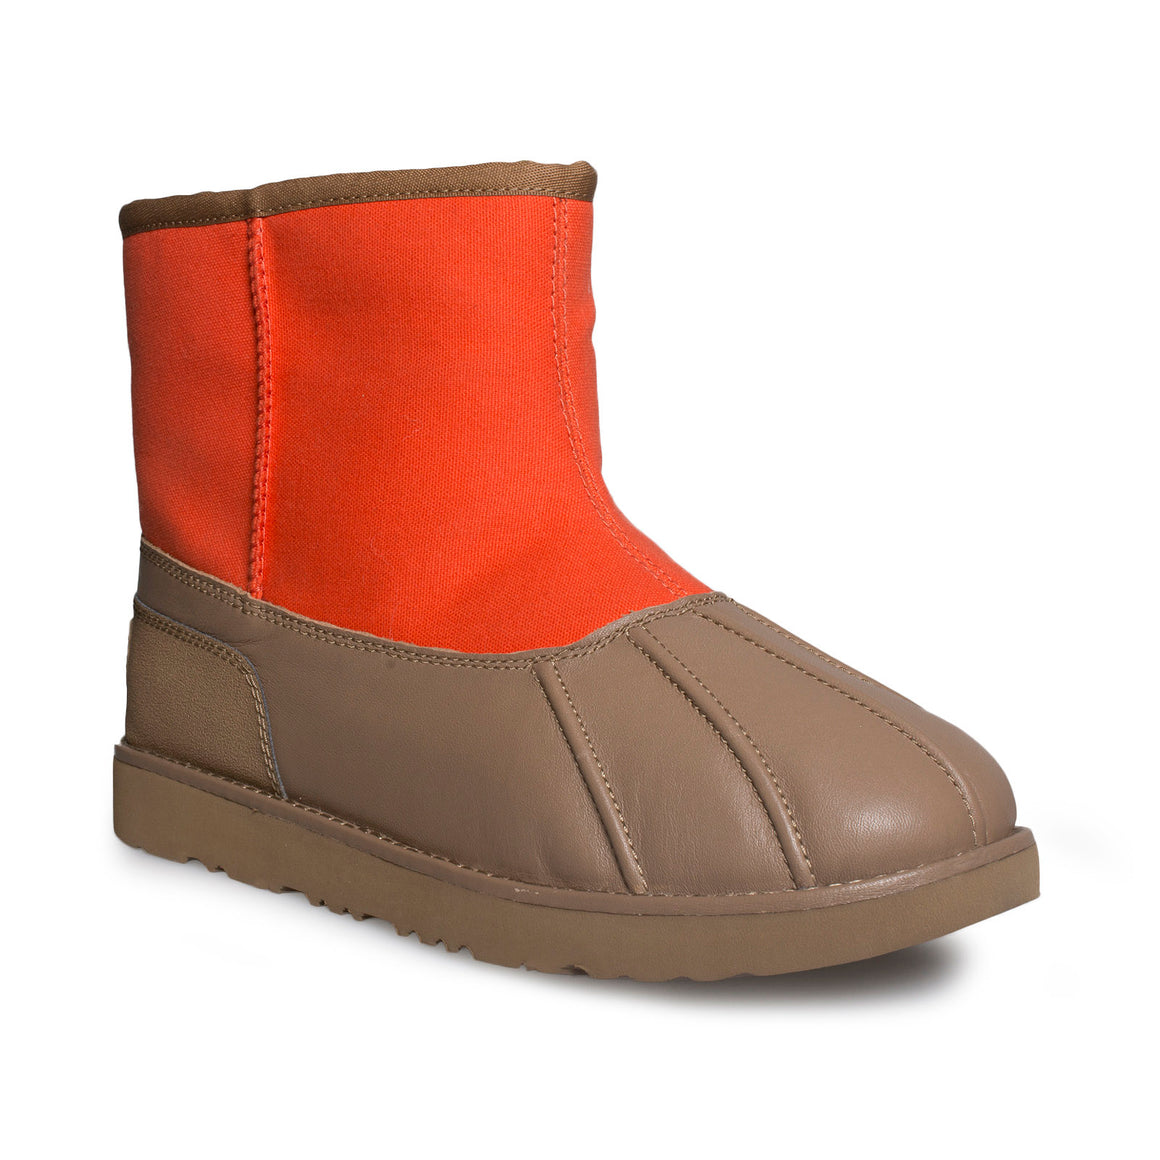 UGG Phillip Lim Classic Short Duck Orange Boots - Men's